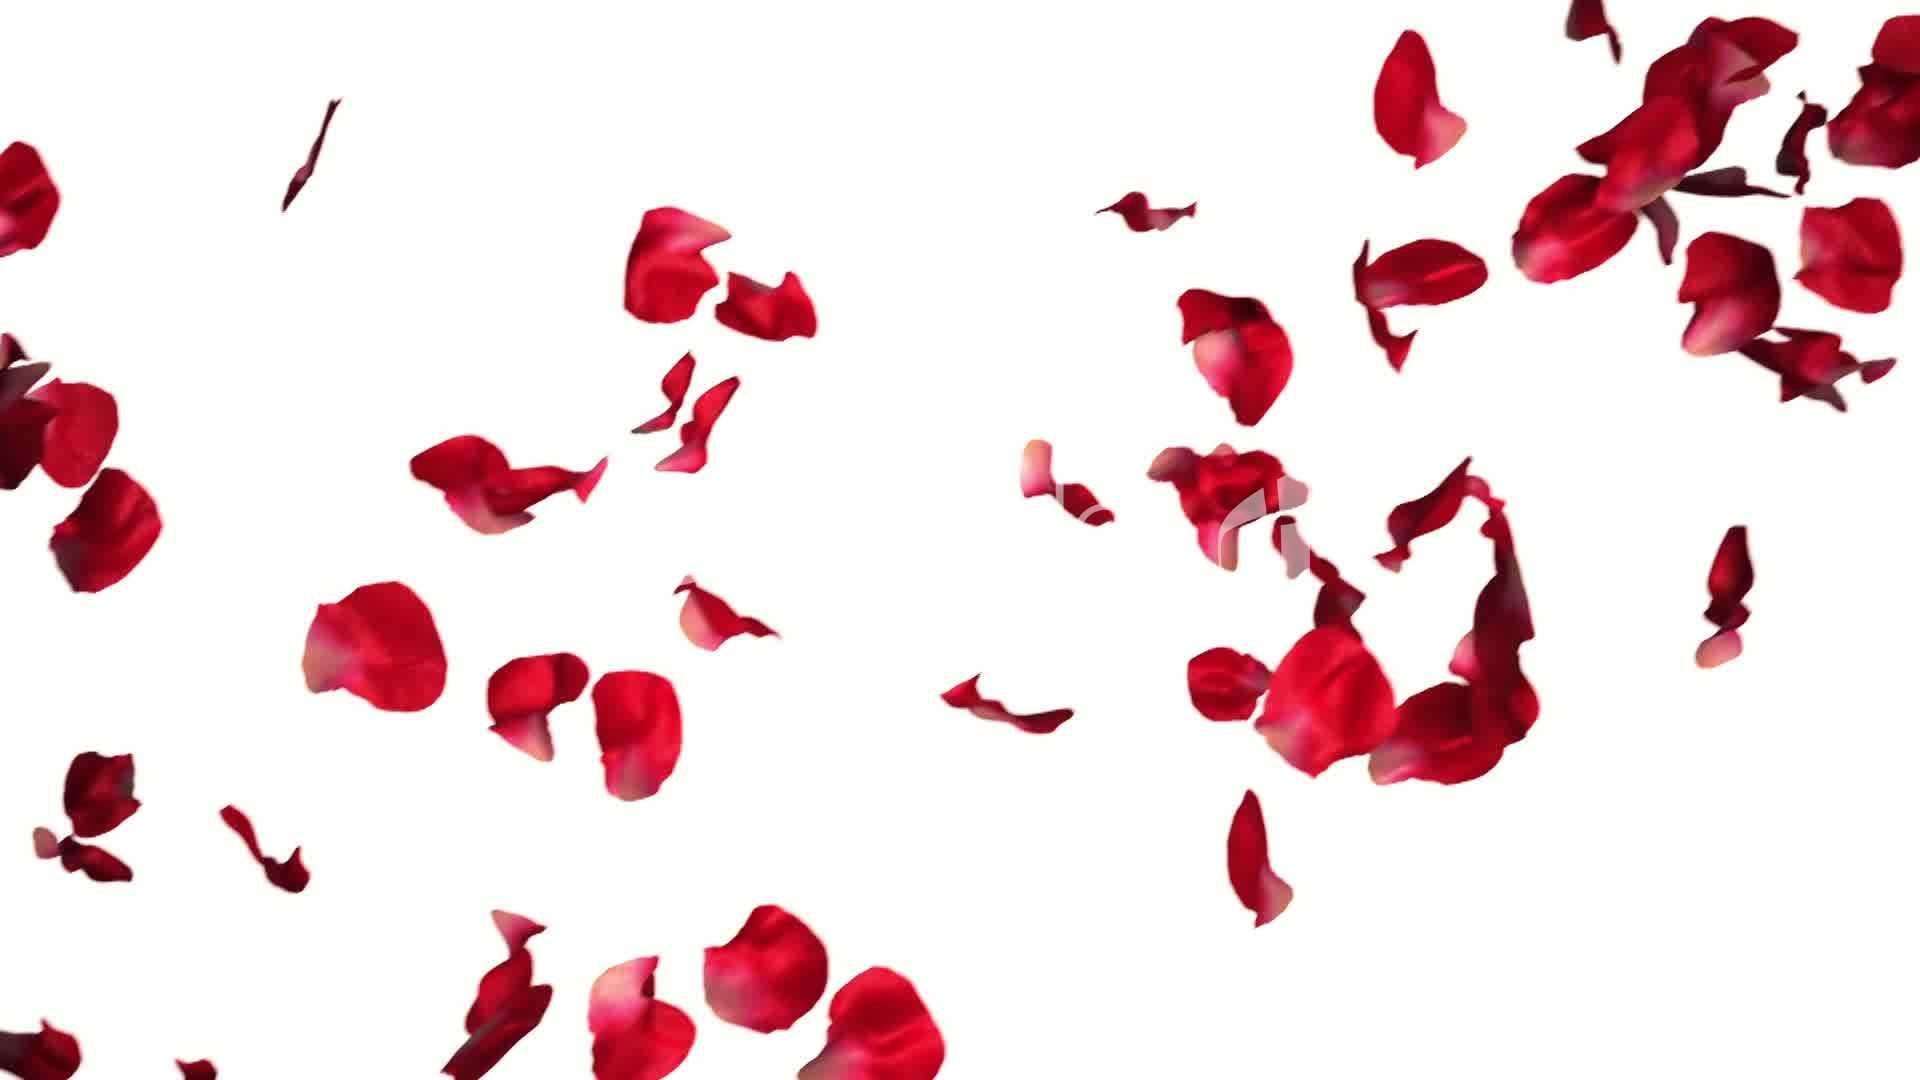 Red Falling Petals Pictures | Jacob Artsy | Pinterest | Artsy and ...